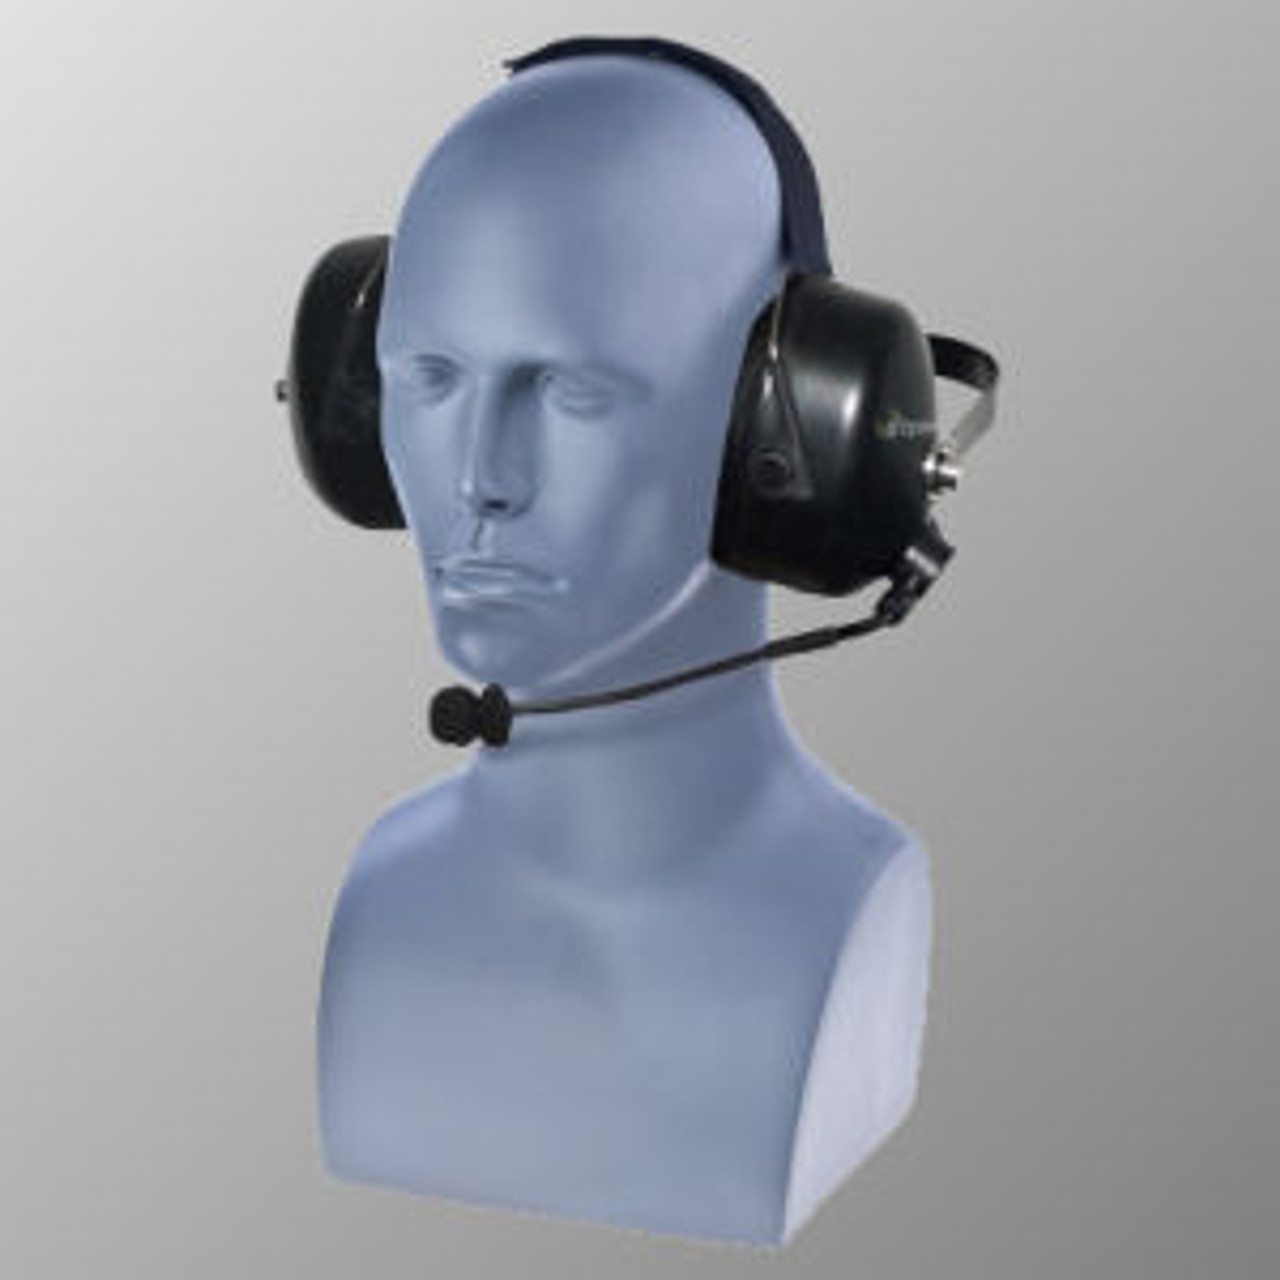 EF Johnson 5000 Noise Canceling Wireless PTT Double Muff Behind The Head Headset